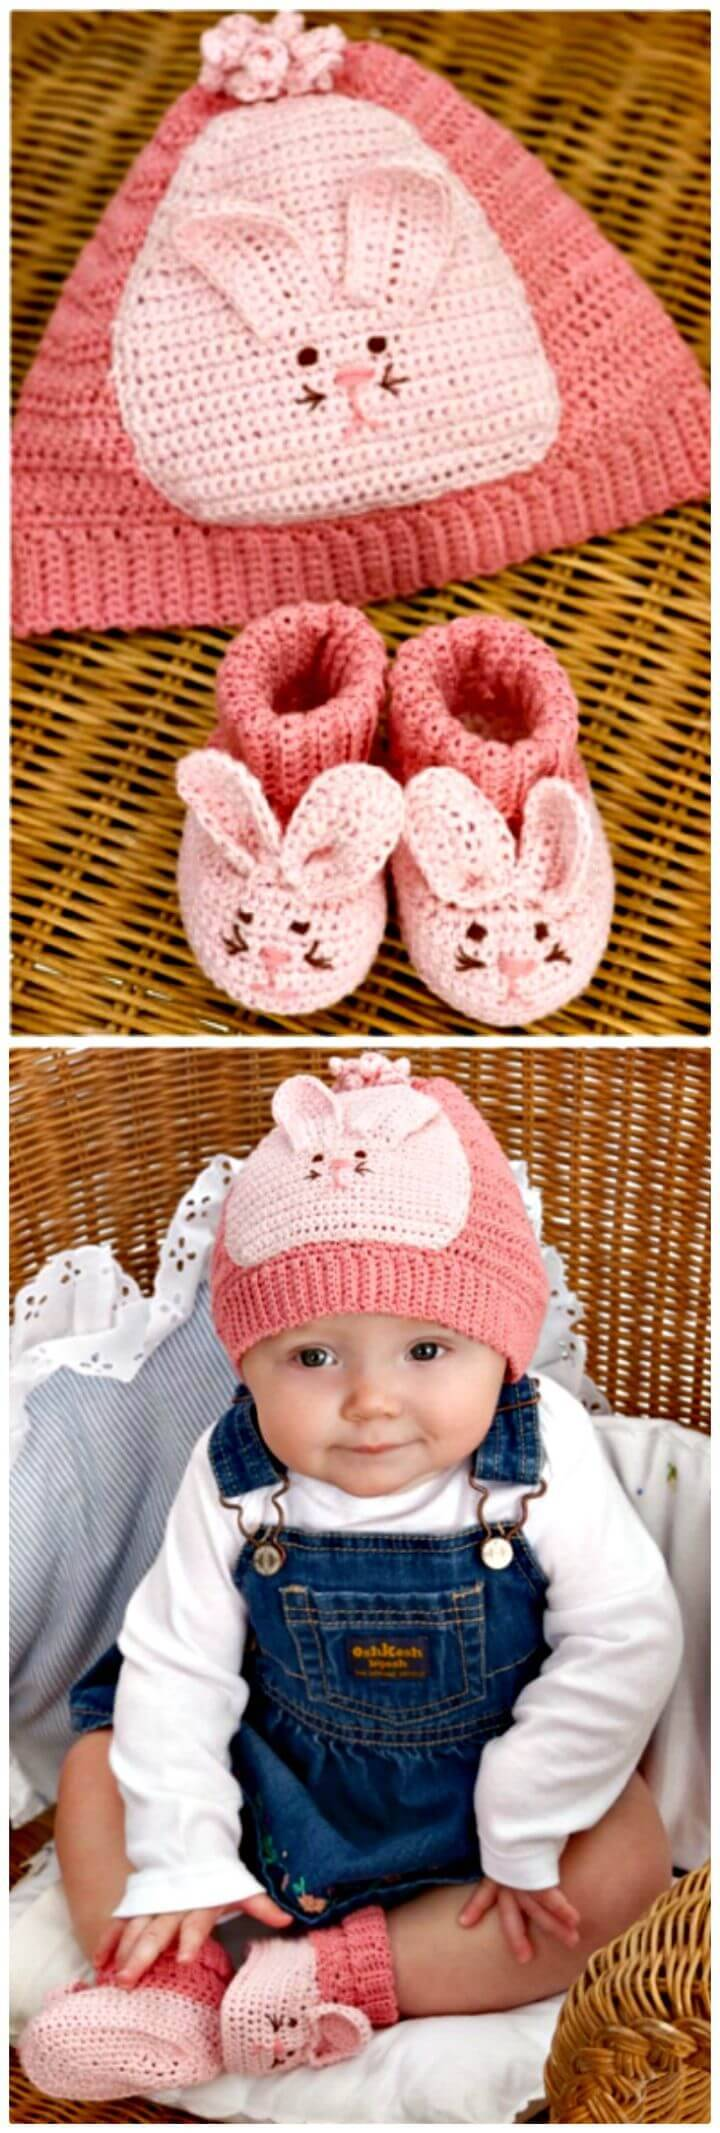 How To Crochet Baby Booties & Hat From Red Heart